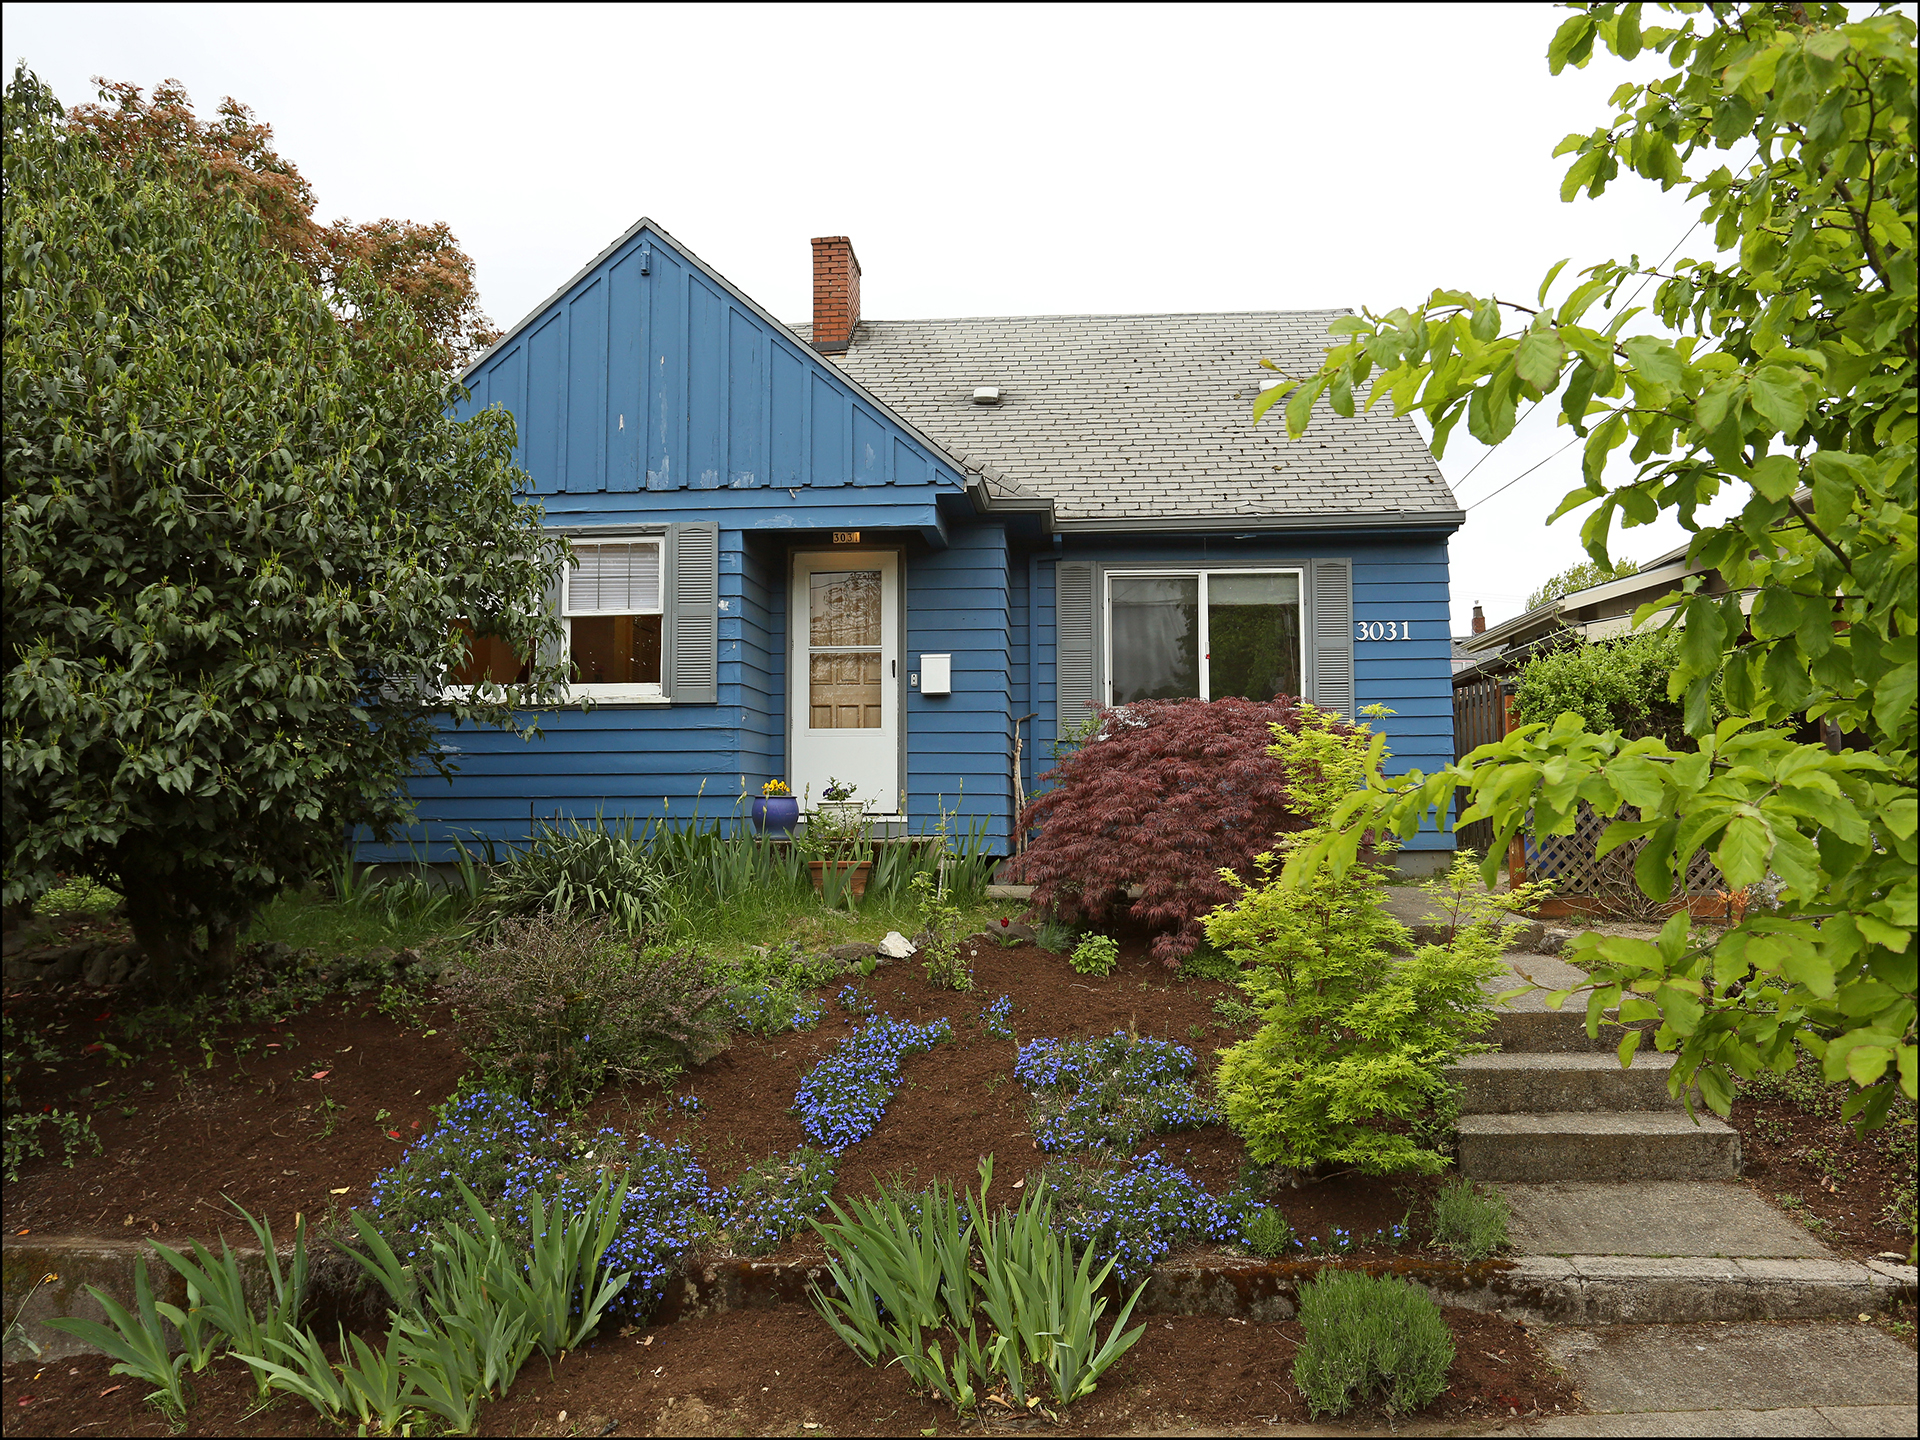 3031 SE 53rd Ave . - South Tabor Bungalow -  $399,900 -  SOLD!